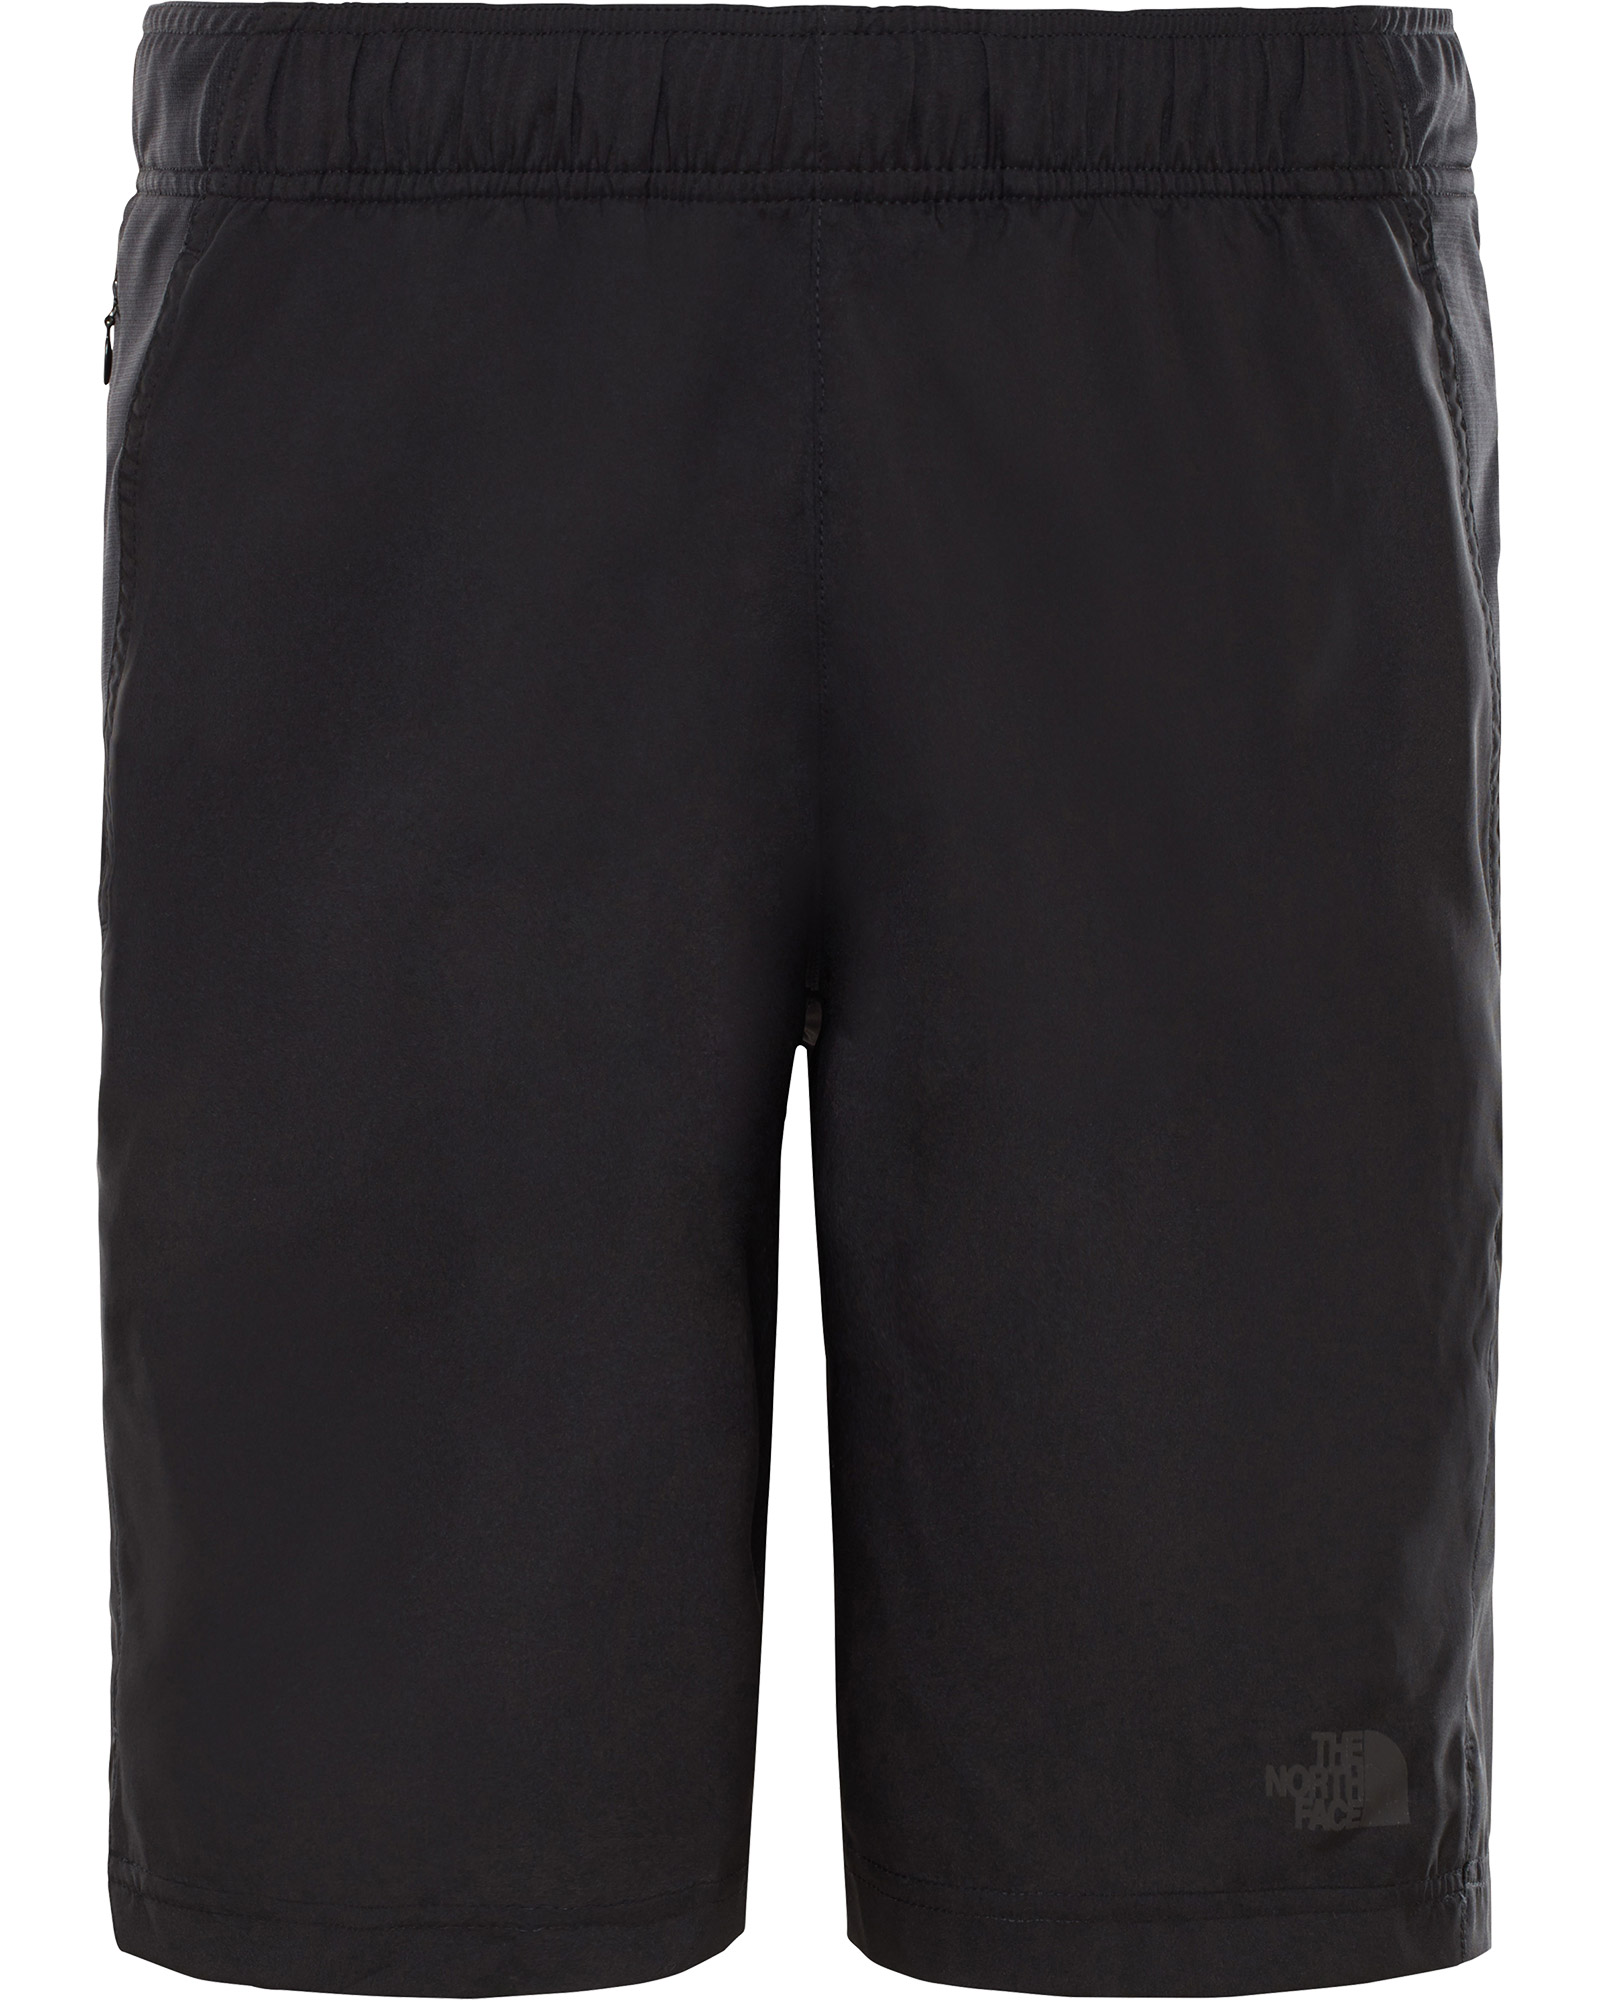 Product image of The North Face Men's 24/7 Shorts